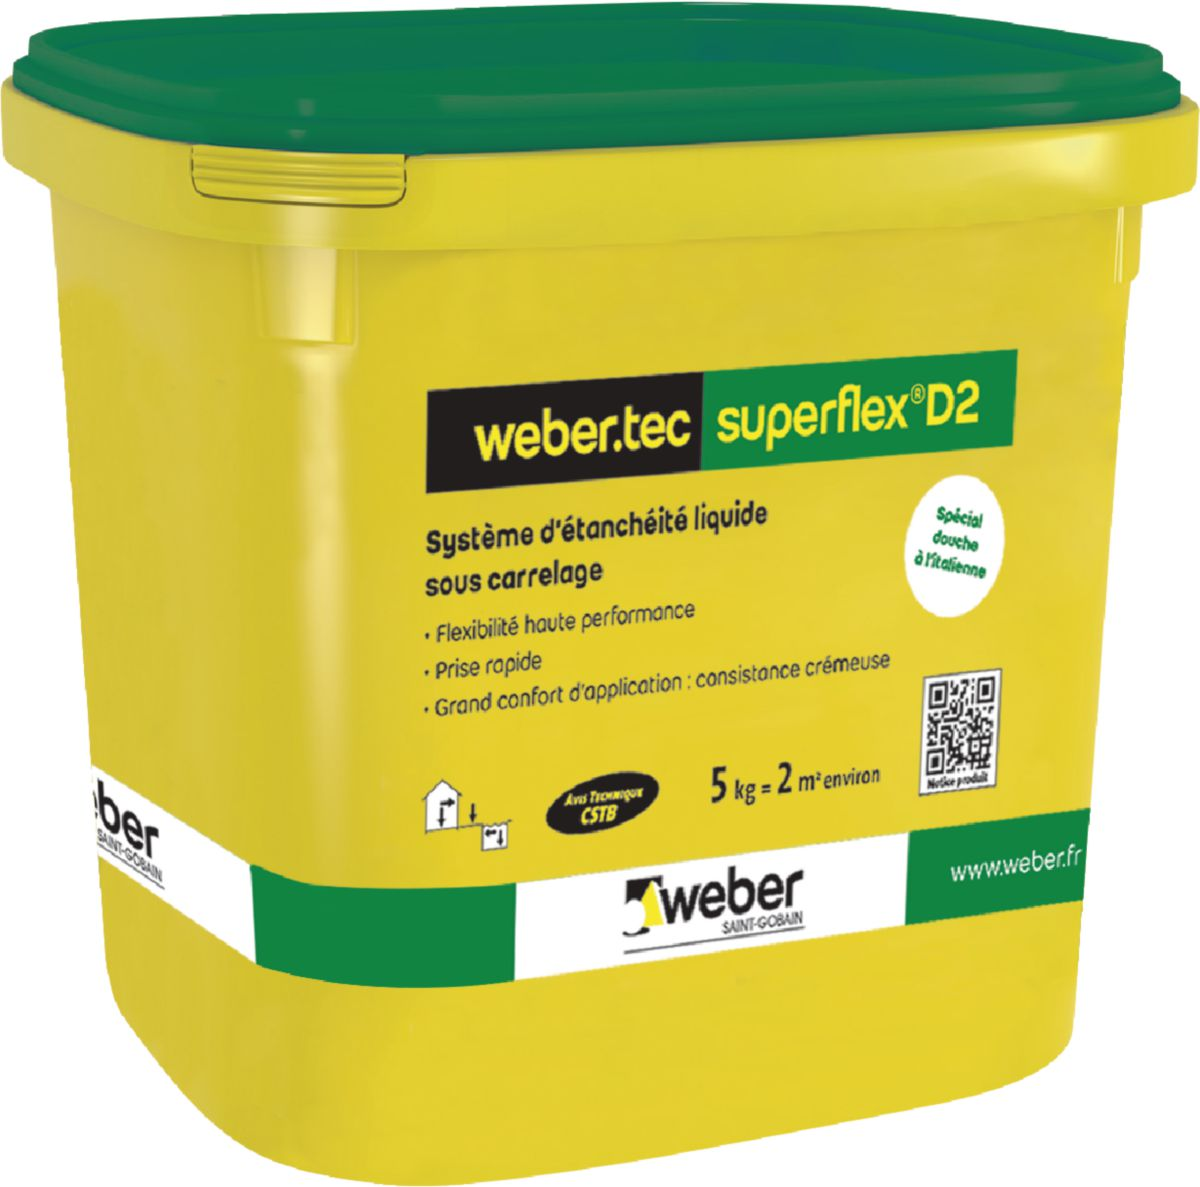 mortier dtanchit liquide sous carrelage webertec superflex d2 weber gris kit 24 kg weber dcoration intrieure distributeur de matriaux de